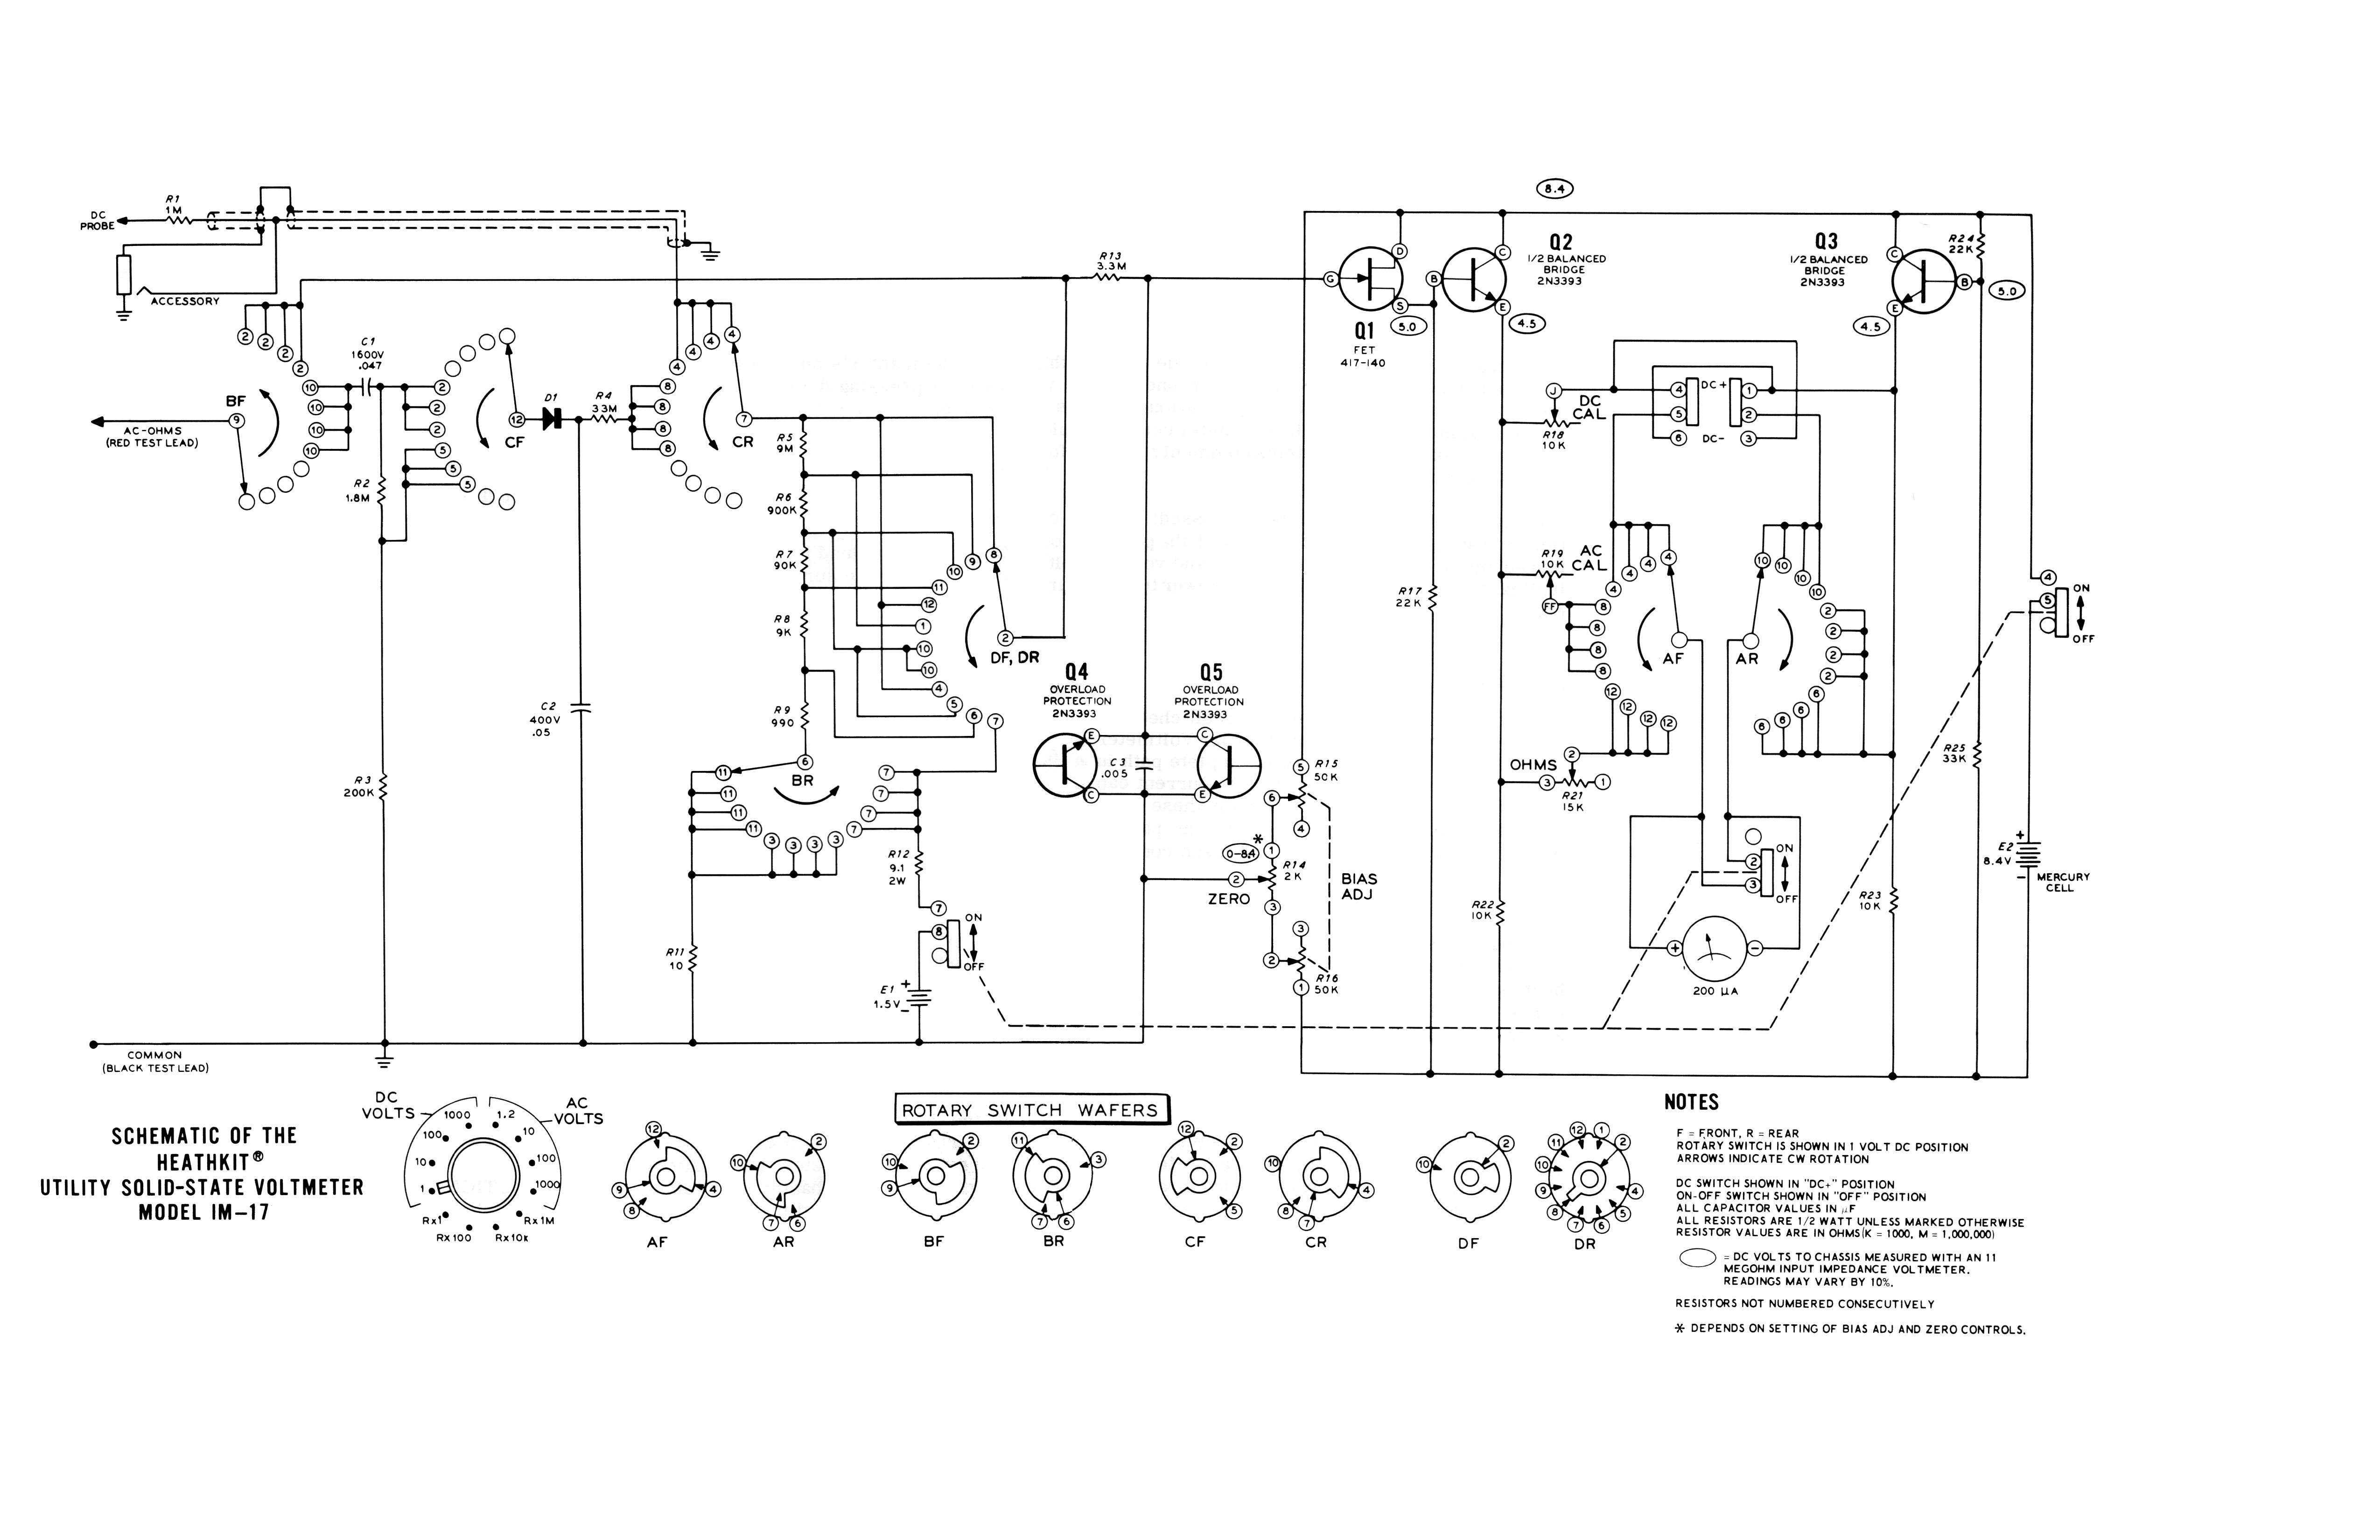 Hom Rev New Heath Of The Month 78 Im 17 Utility Solid State Fet Voltmeter Circuit Schematic Diagram Heathkit By Bob Eckweiler Af6c Elec